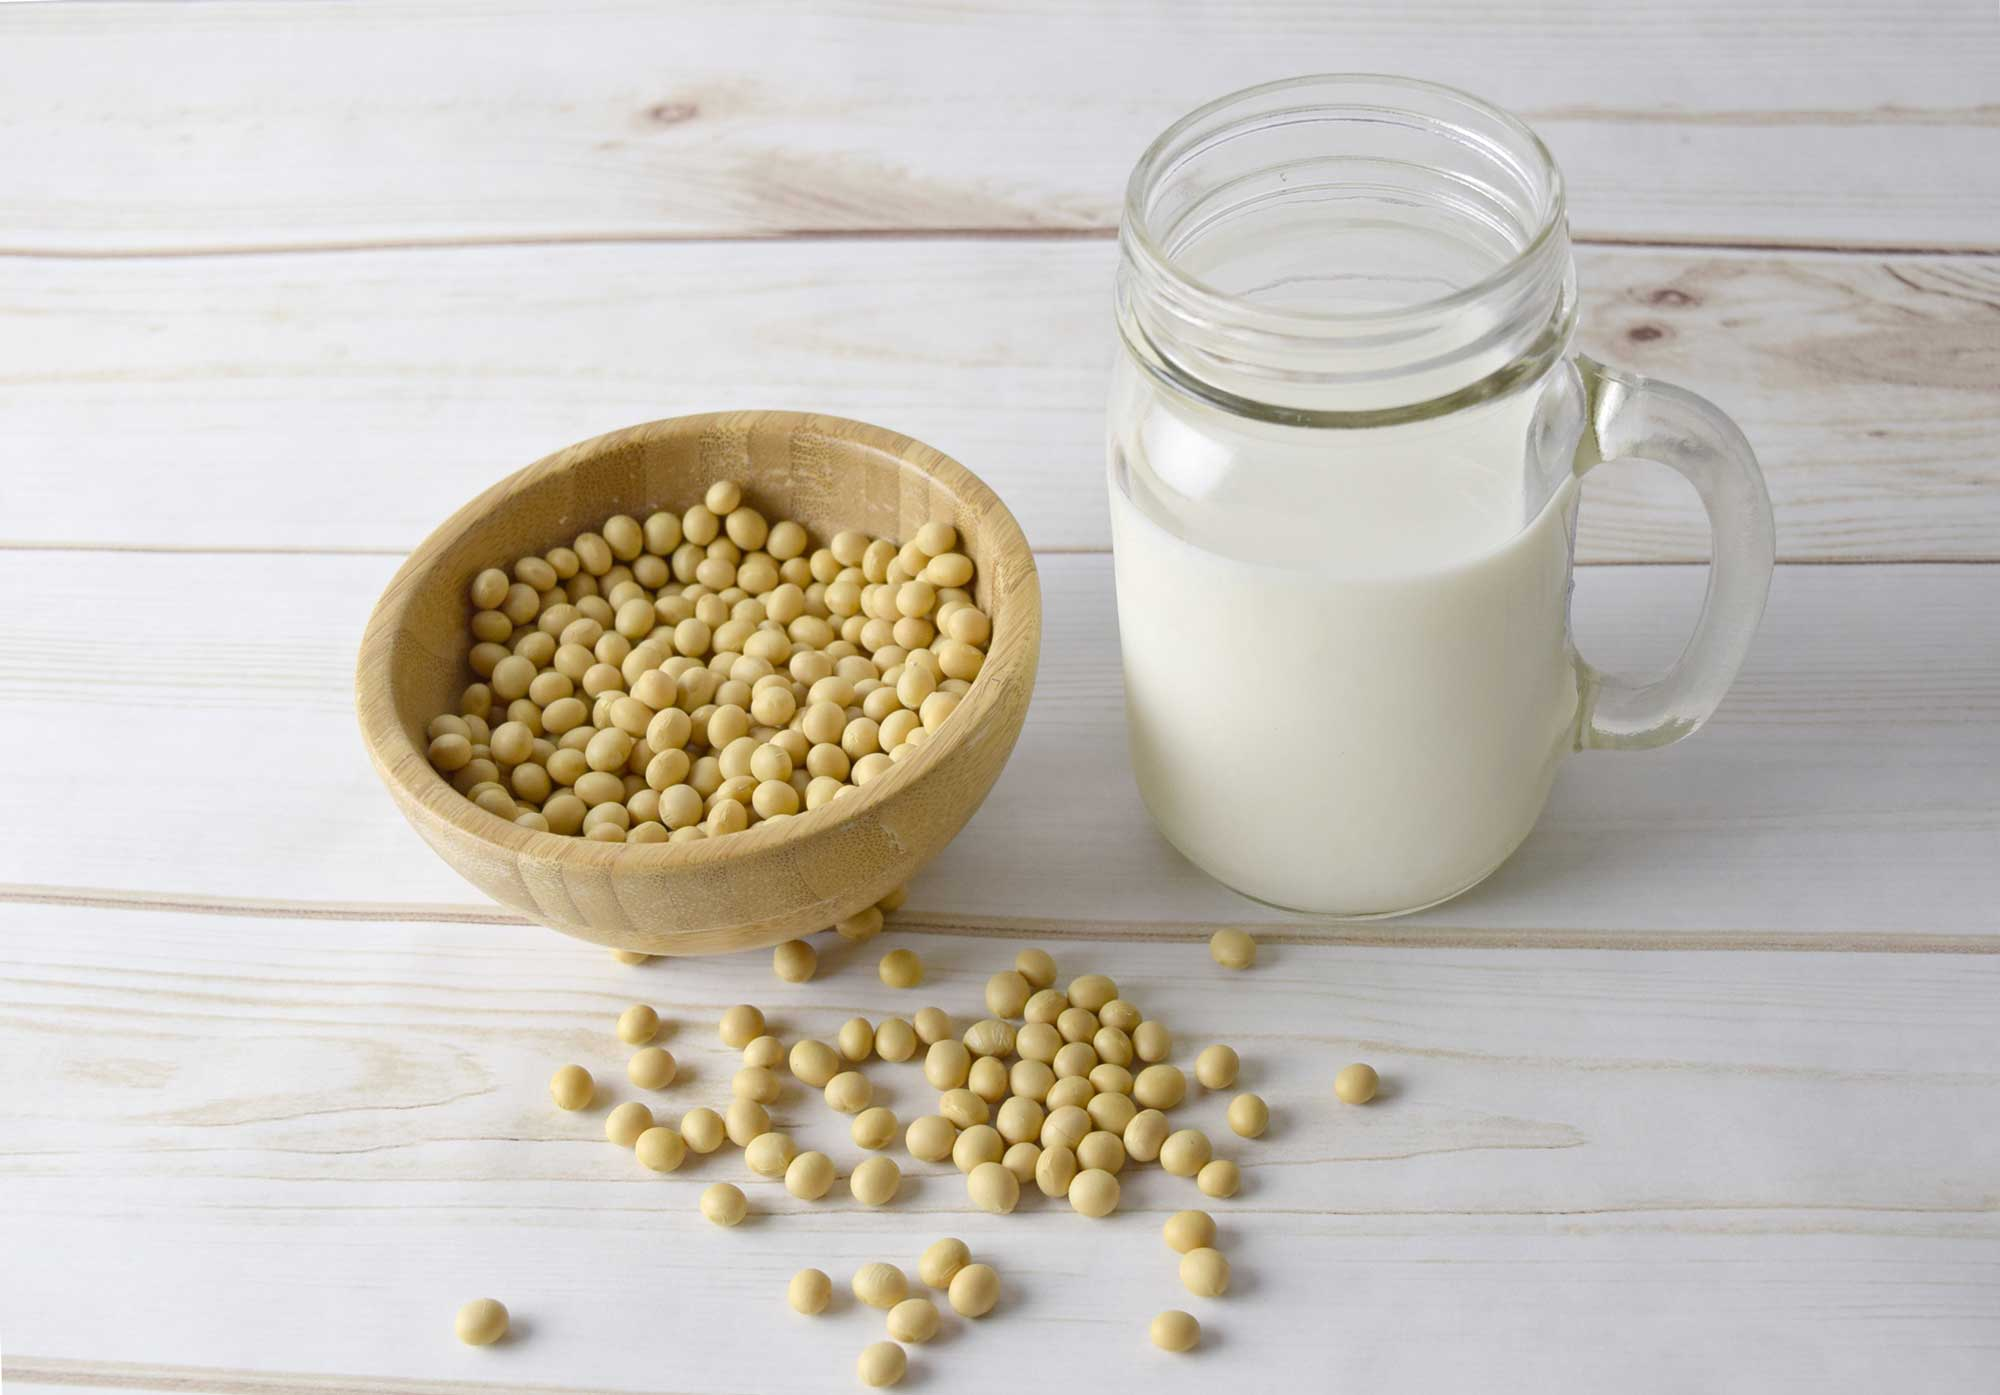 Soy and Why I Avoid It